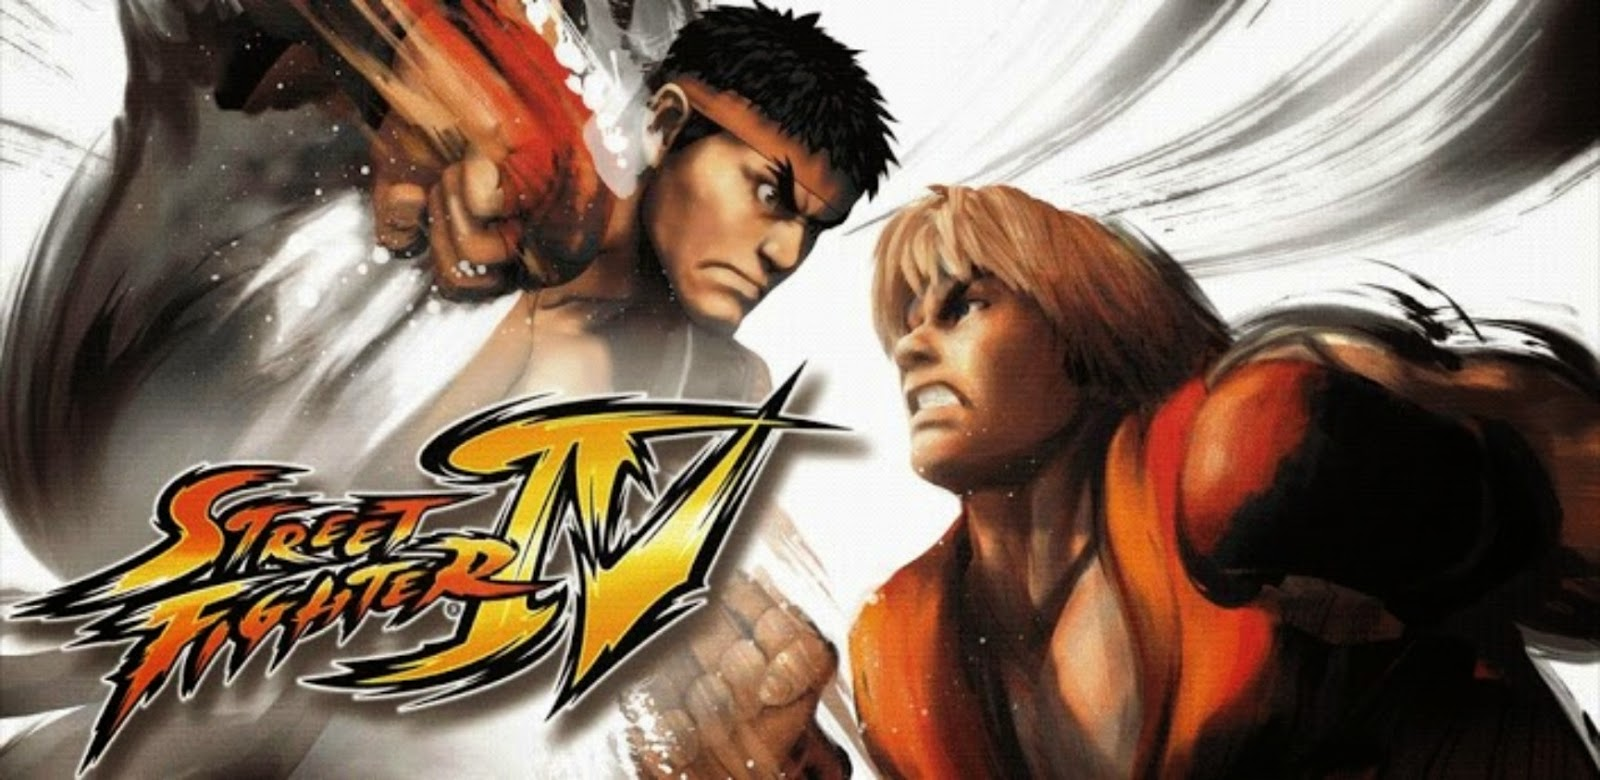 fighter iv hd apk data android free